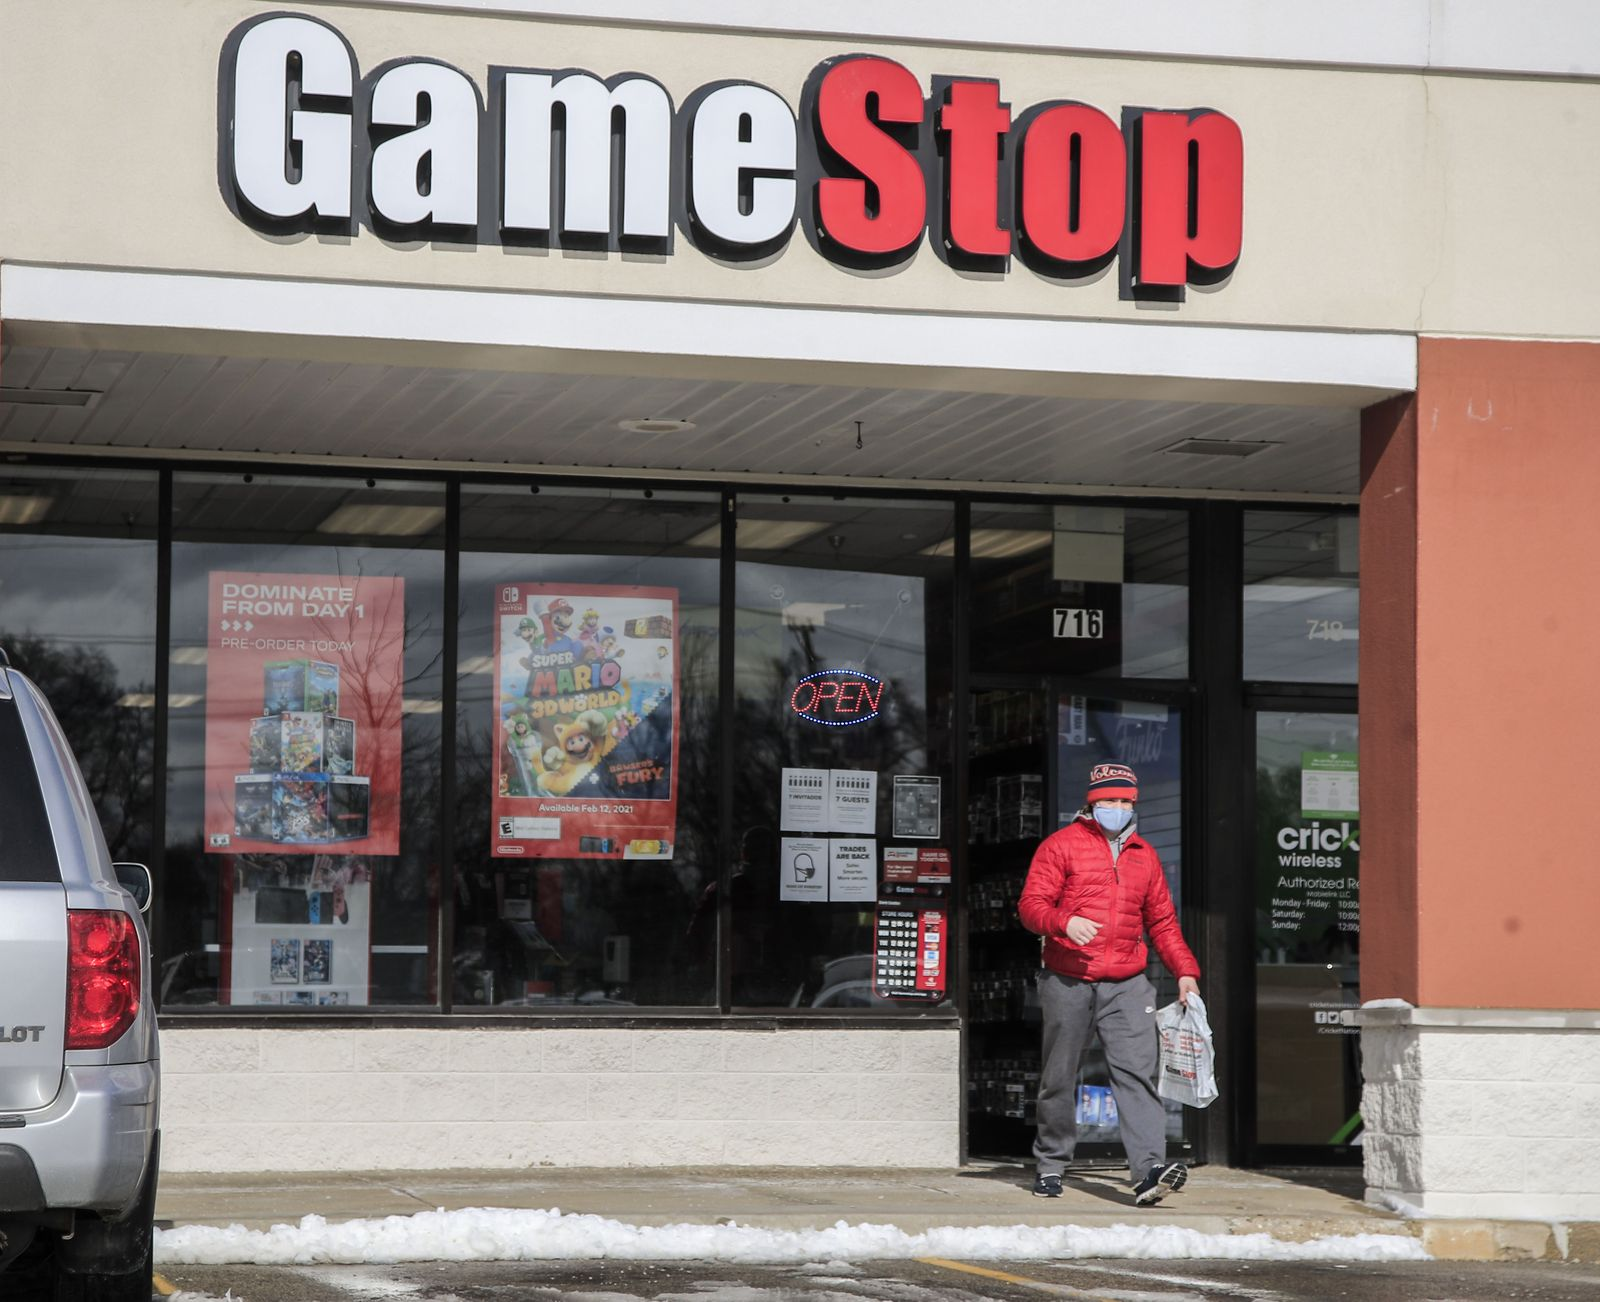 GameStop shares skyrocket from $3.25 to $347.51 in 10 months, Round Lake Beach, USA - 27 Jan 2021